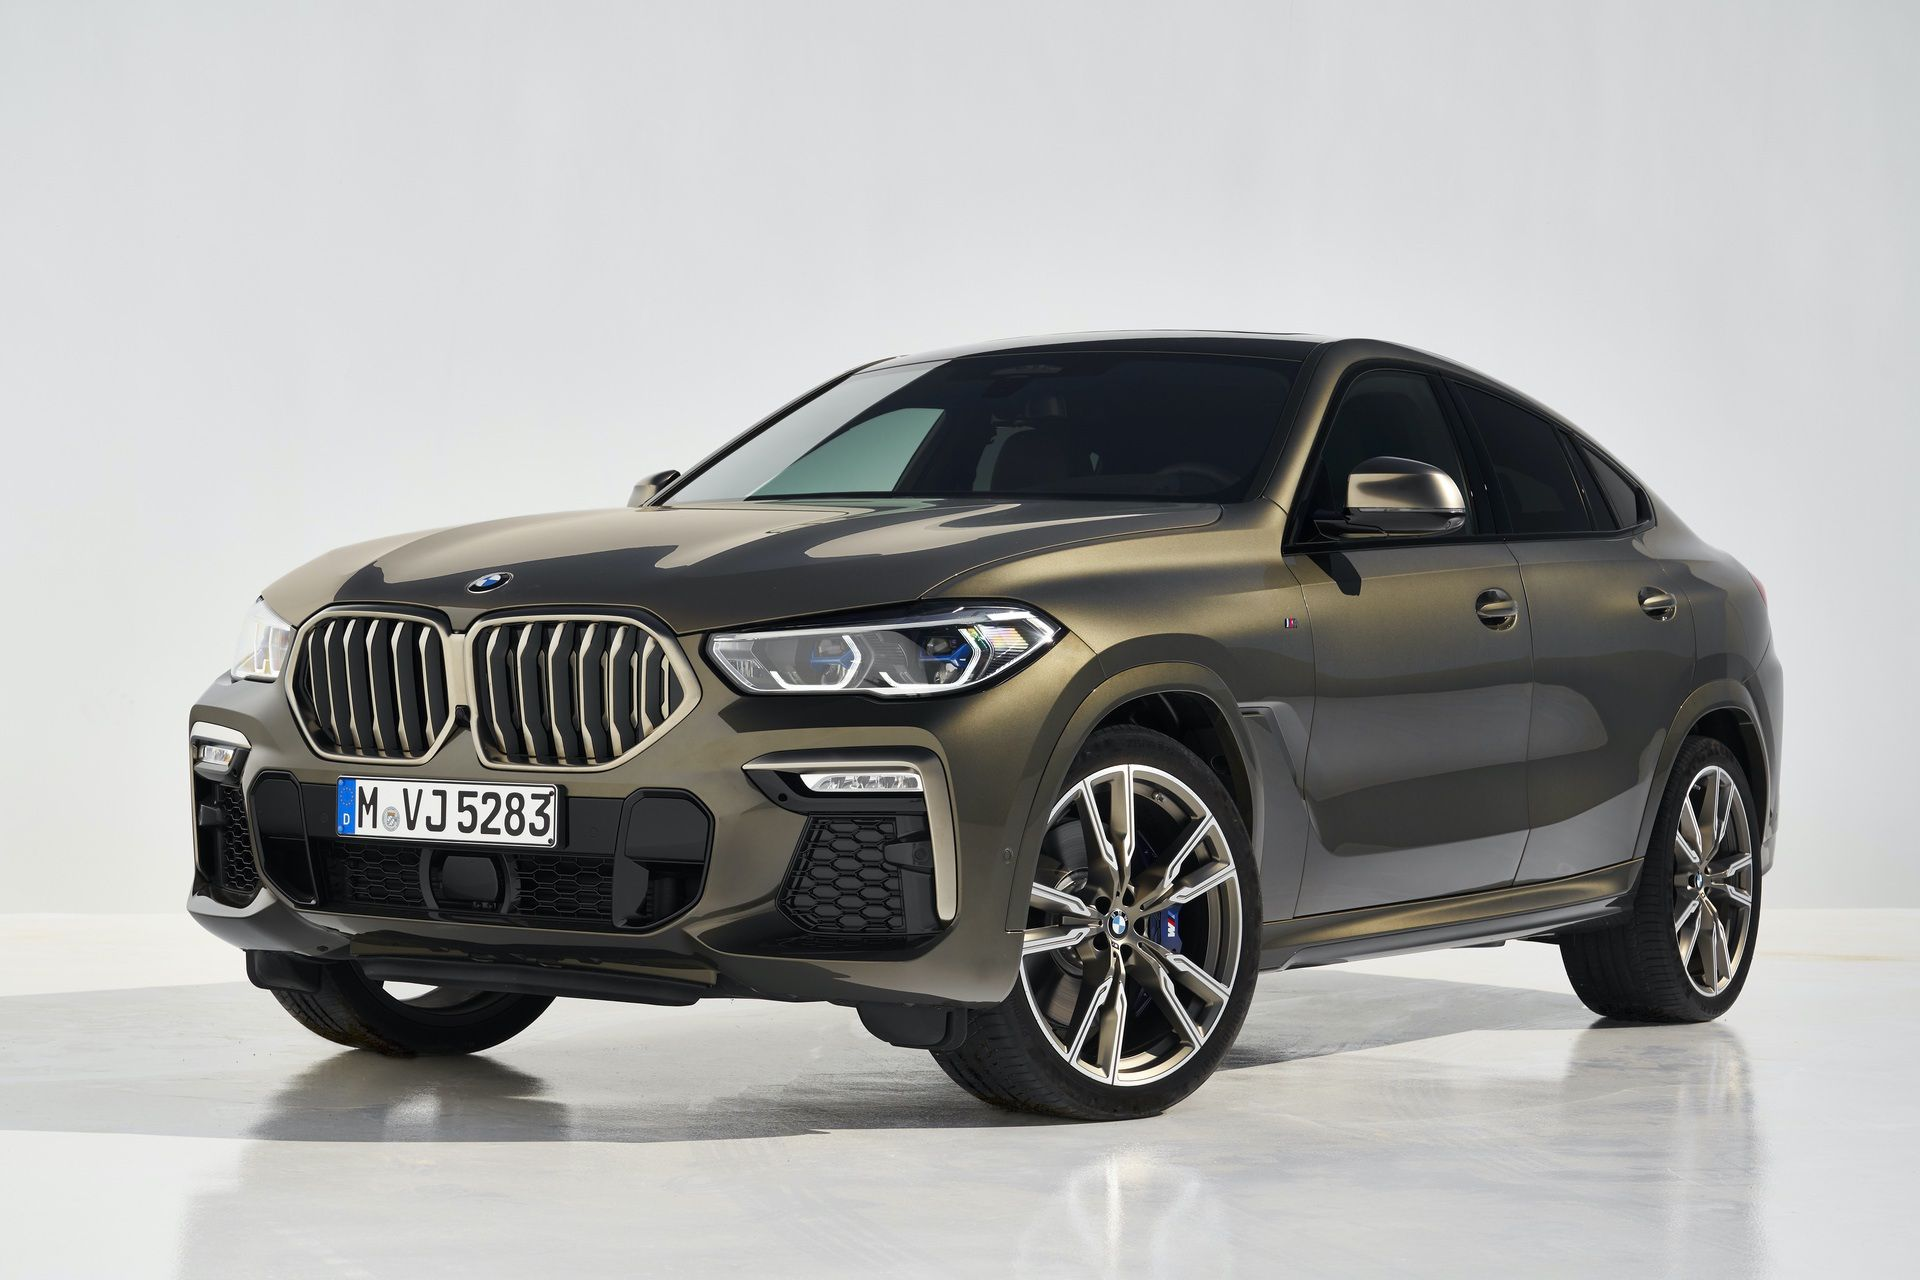 Photo Comparison New Bmw G06 X6 Vs Old X6 Bmw X6 New Bmw Sport Suv